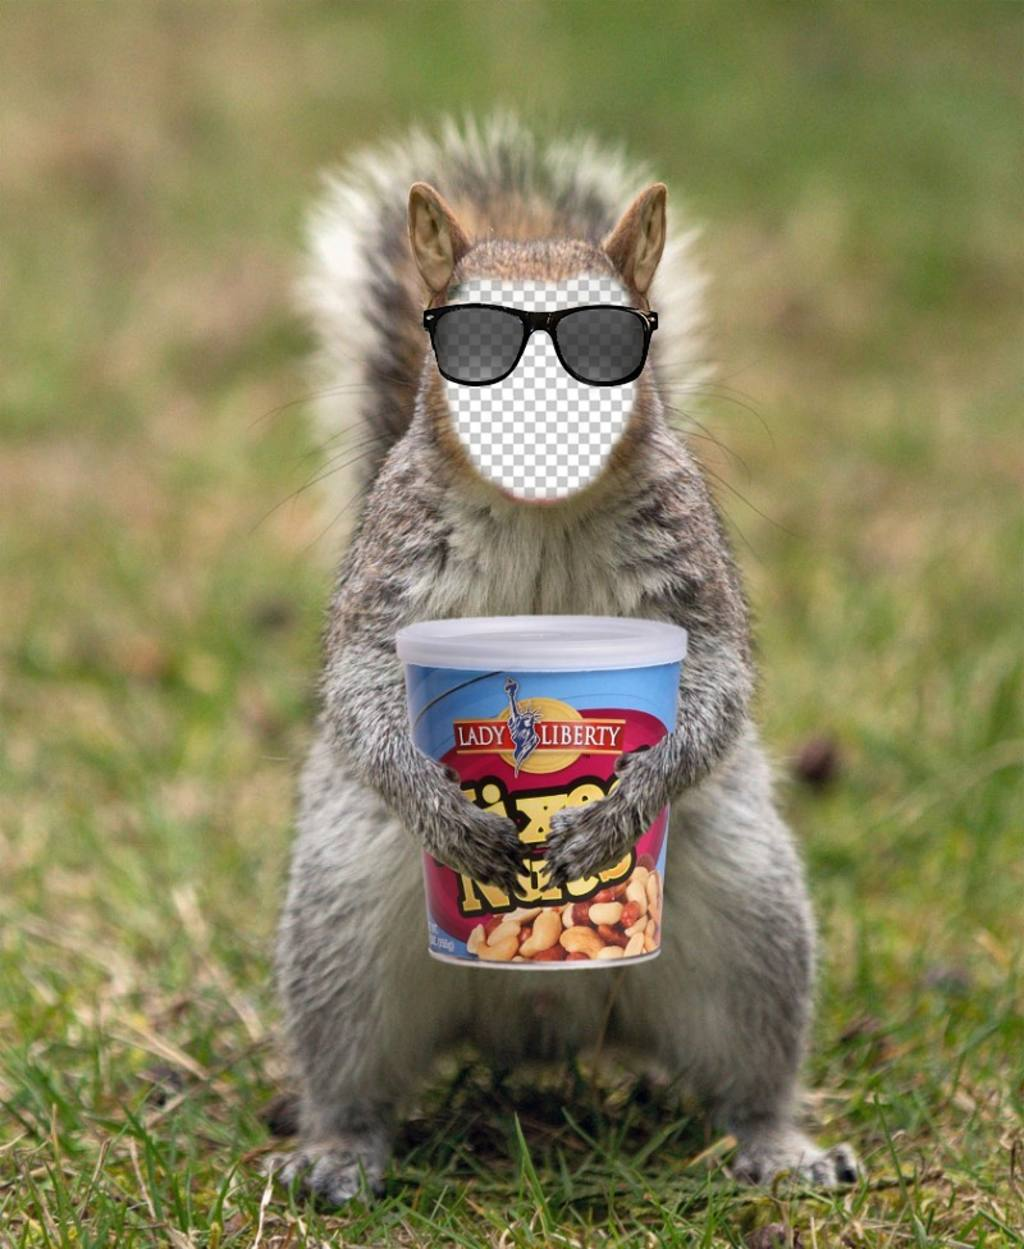 Put your face in a squirrel with a hipster sunglasses and a can of peanuts